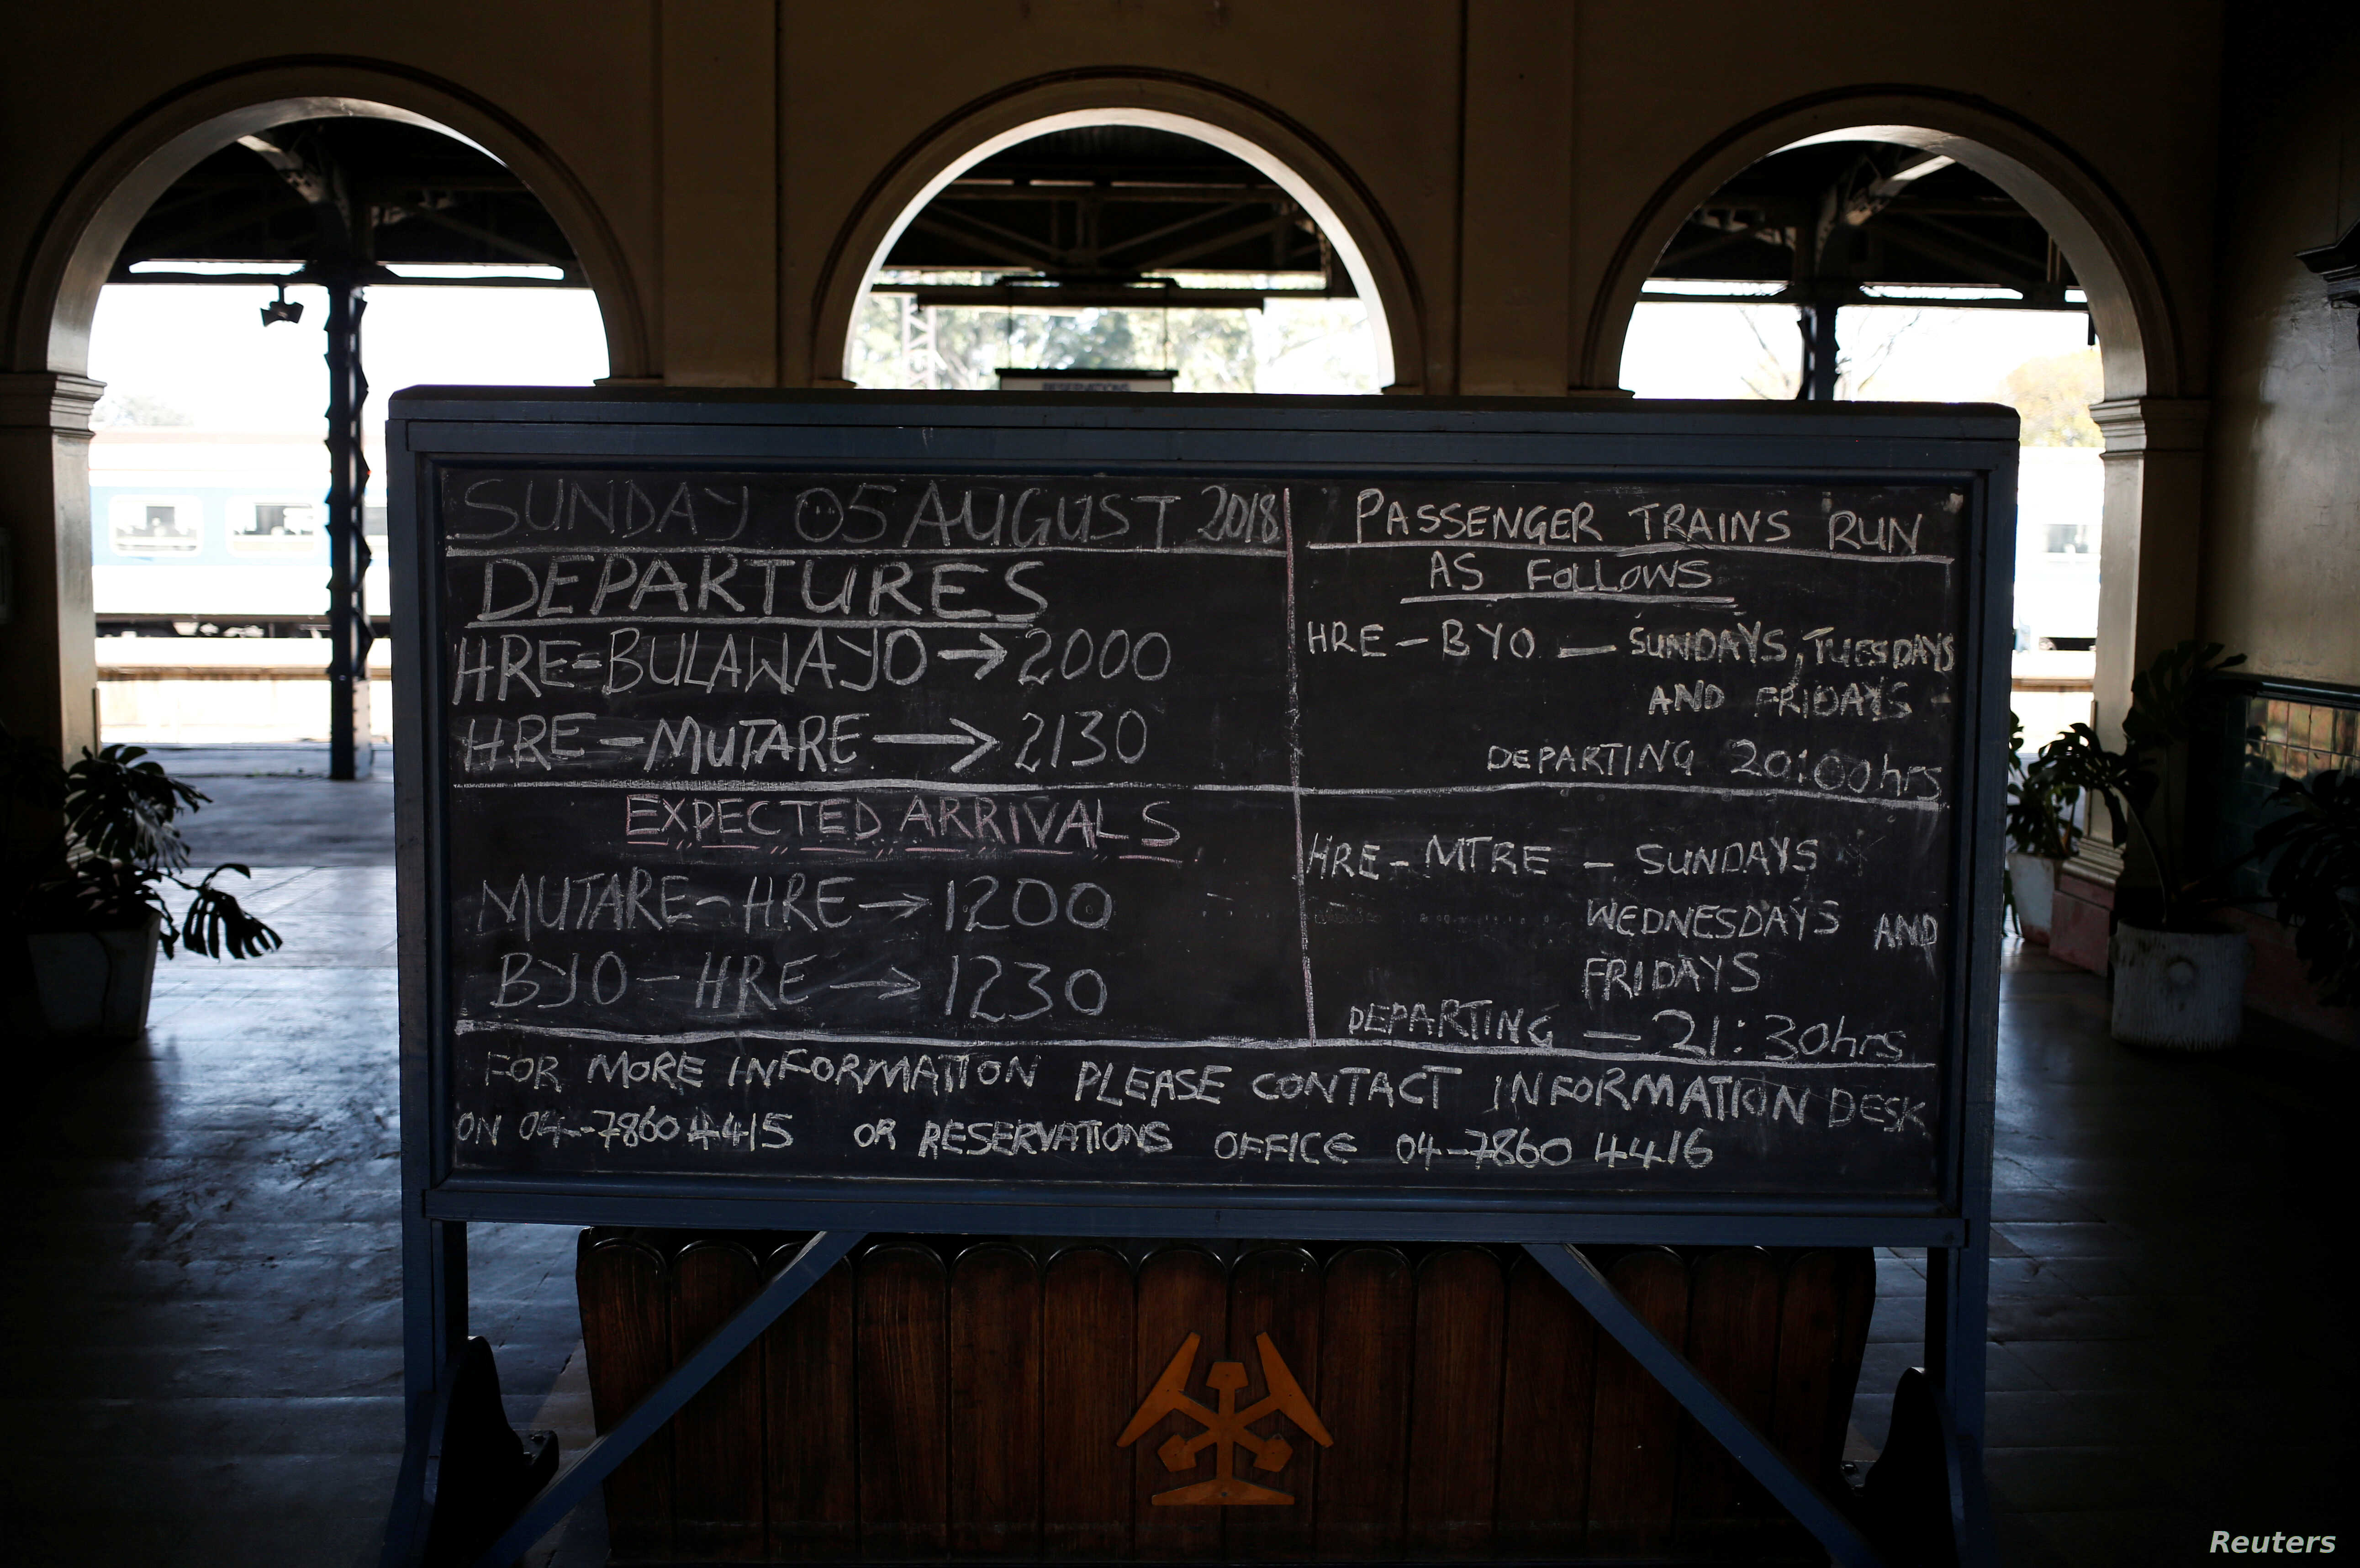 A train schedule is written on a chalk board at a train station in Harare, Zimbabwe, Aug. 5, 2018.